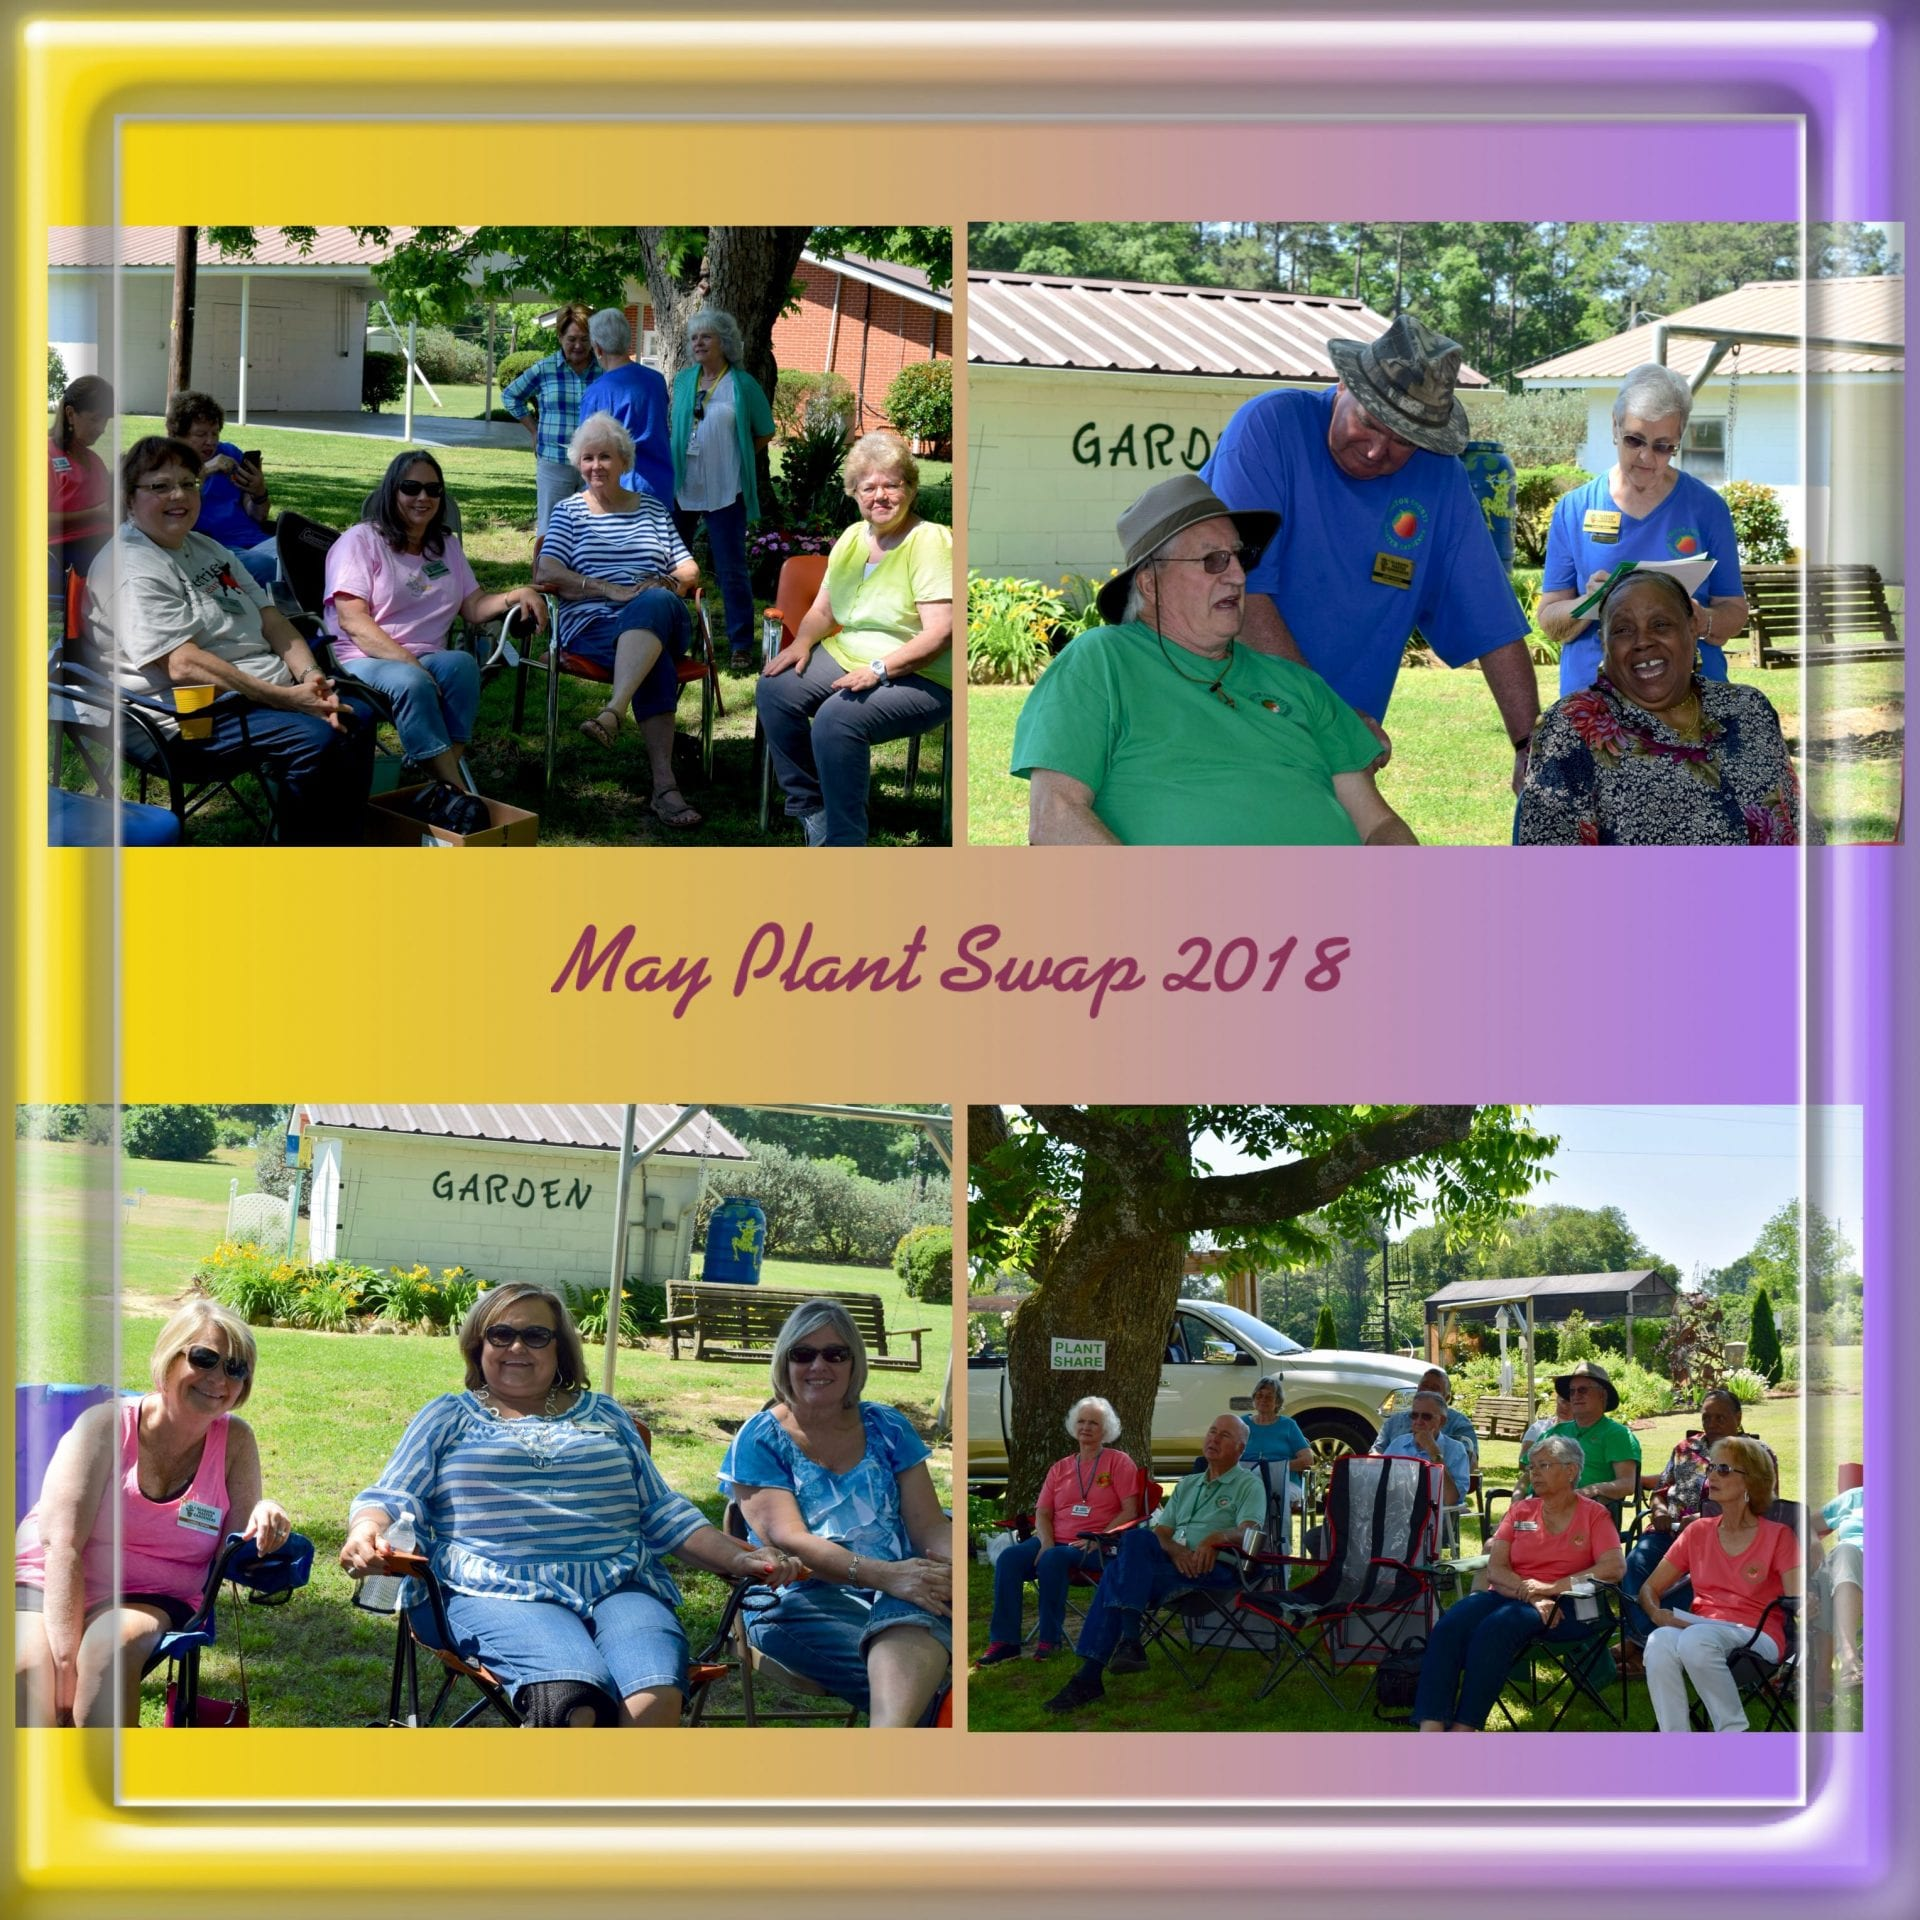 May Plant Swap